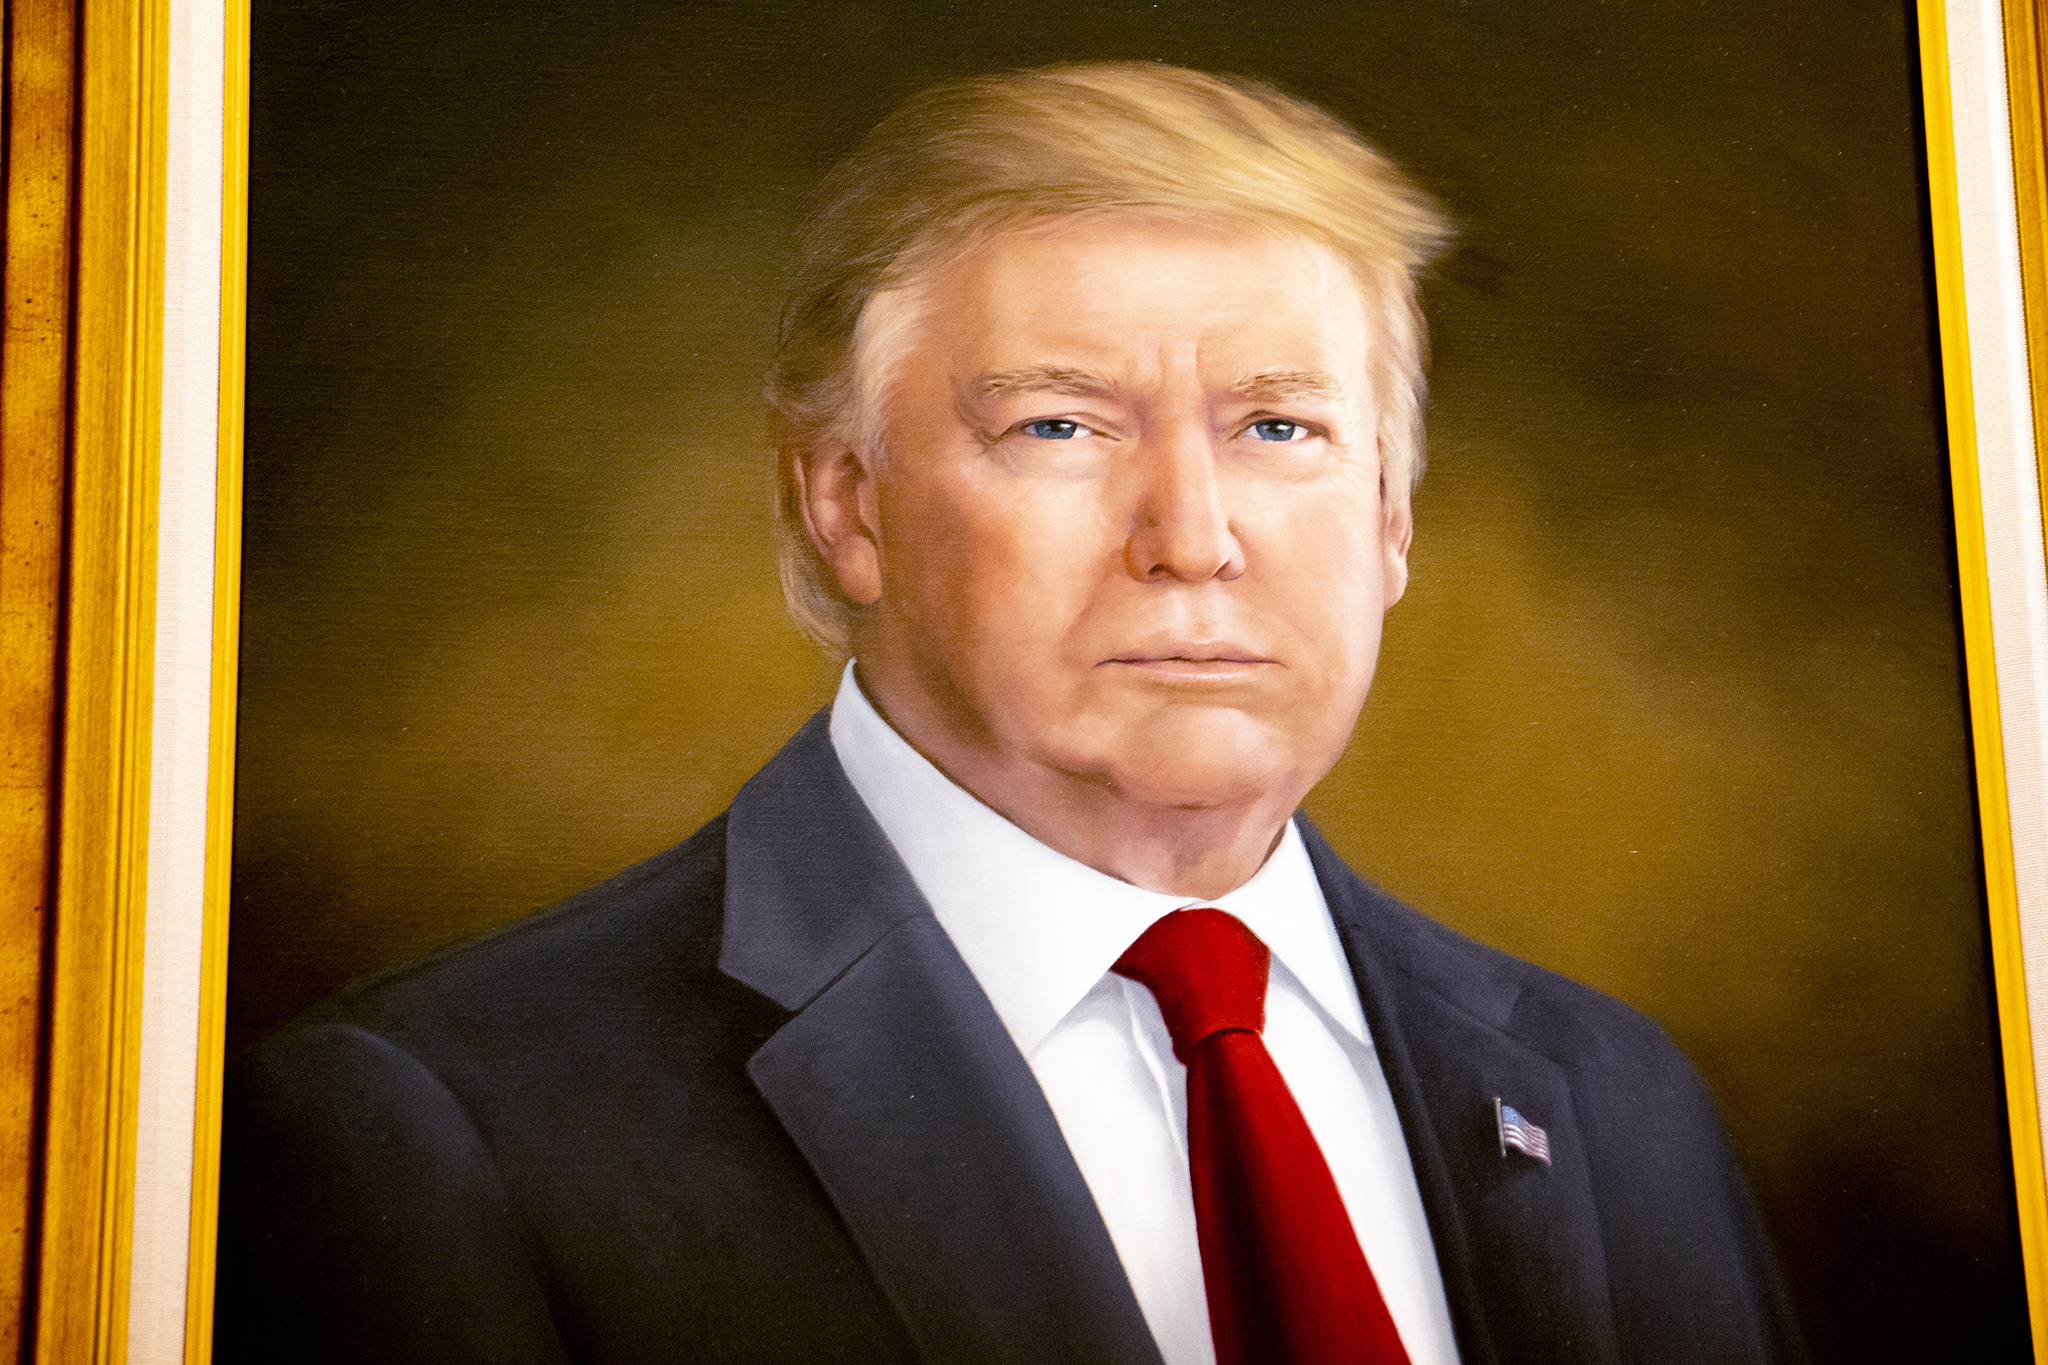 A portrait of President Donald Trump unveiled inside the Colorado State Capitol on Thursday, Aug. 1, 2019.